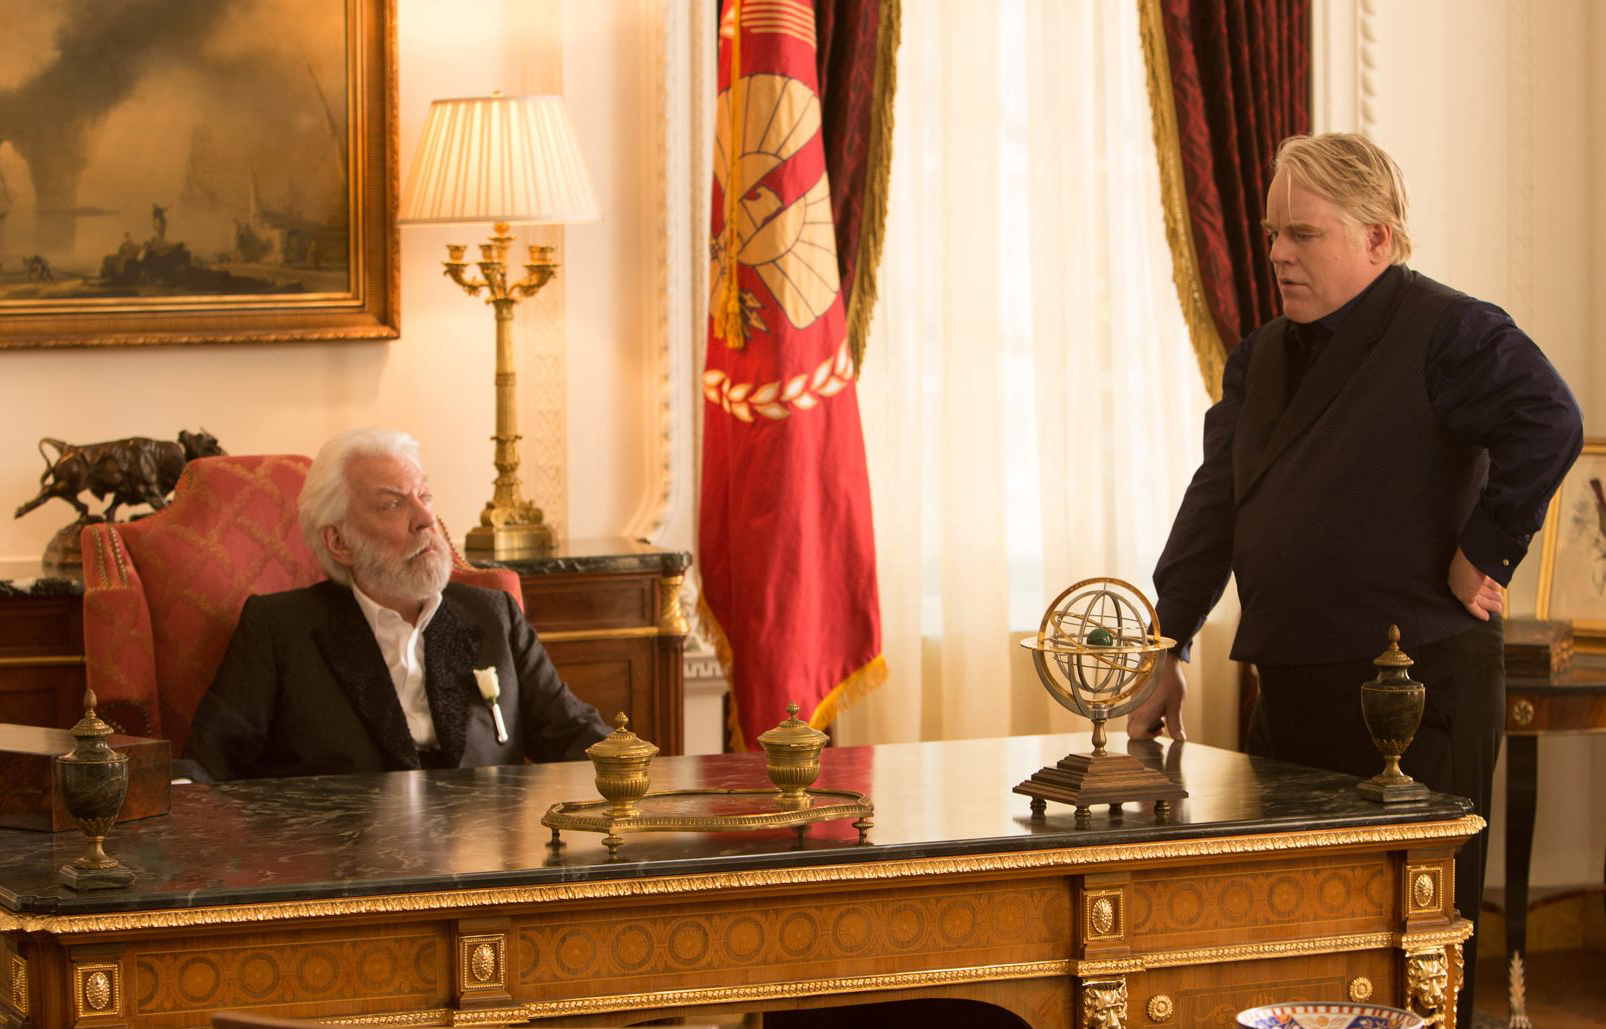 Donald Sutherland and Philip Seymour Hoffman as the villainous President Snow and Plutarch Heavensbee